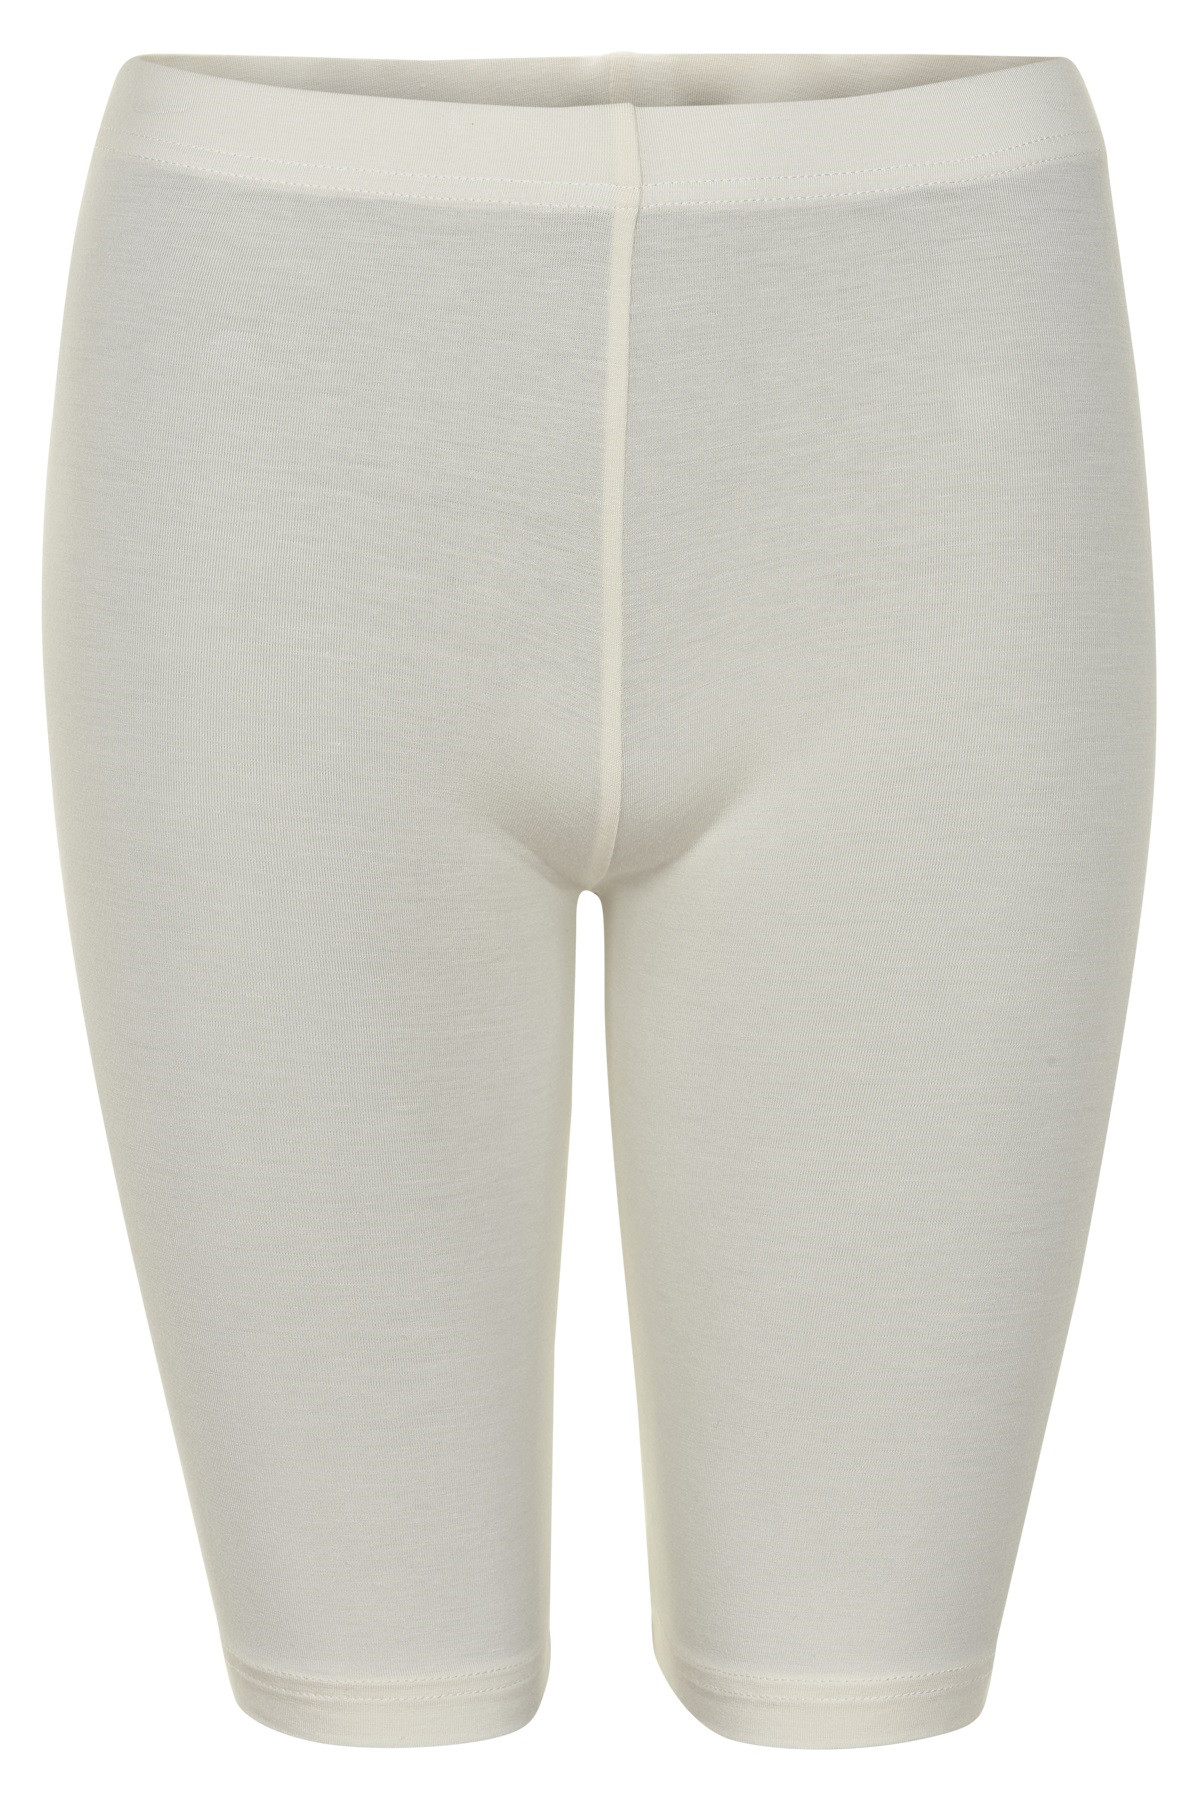 NOA NOA SHORT LEGGINGS 1-9349-2 00505 (Beige, XXL)